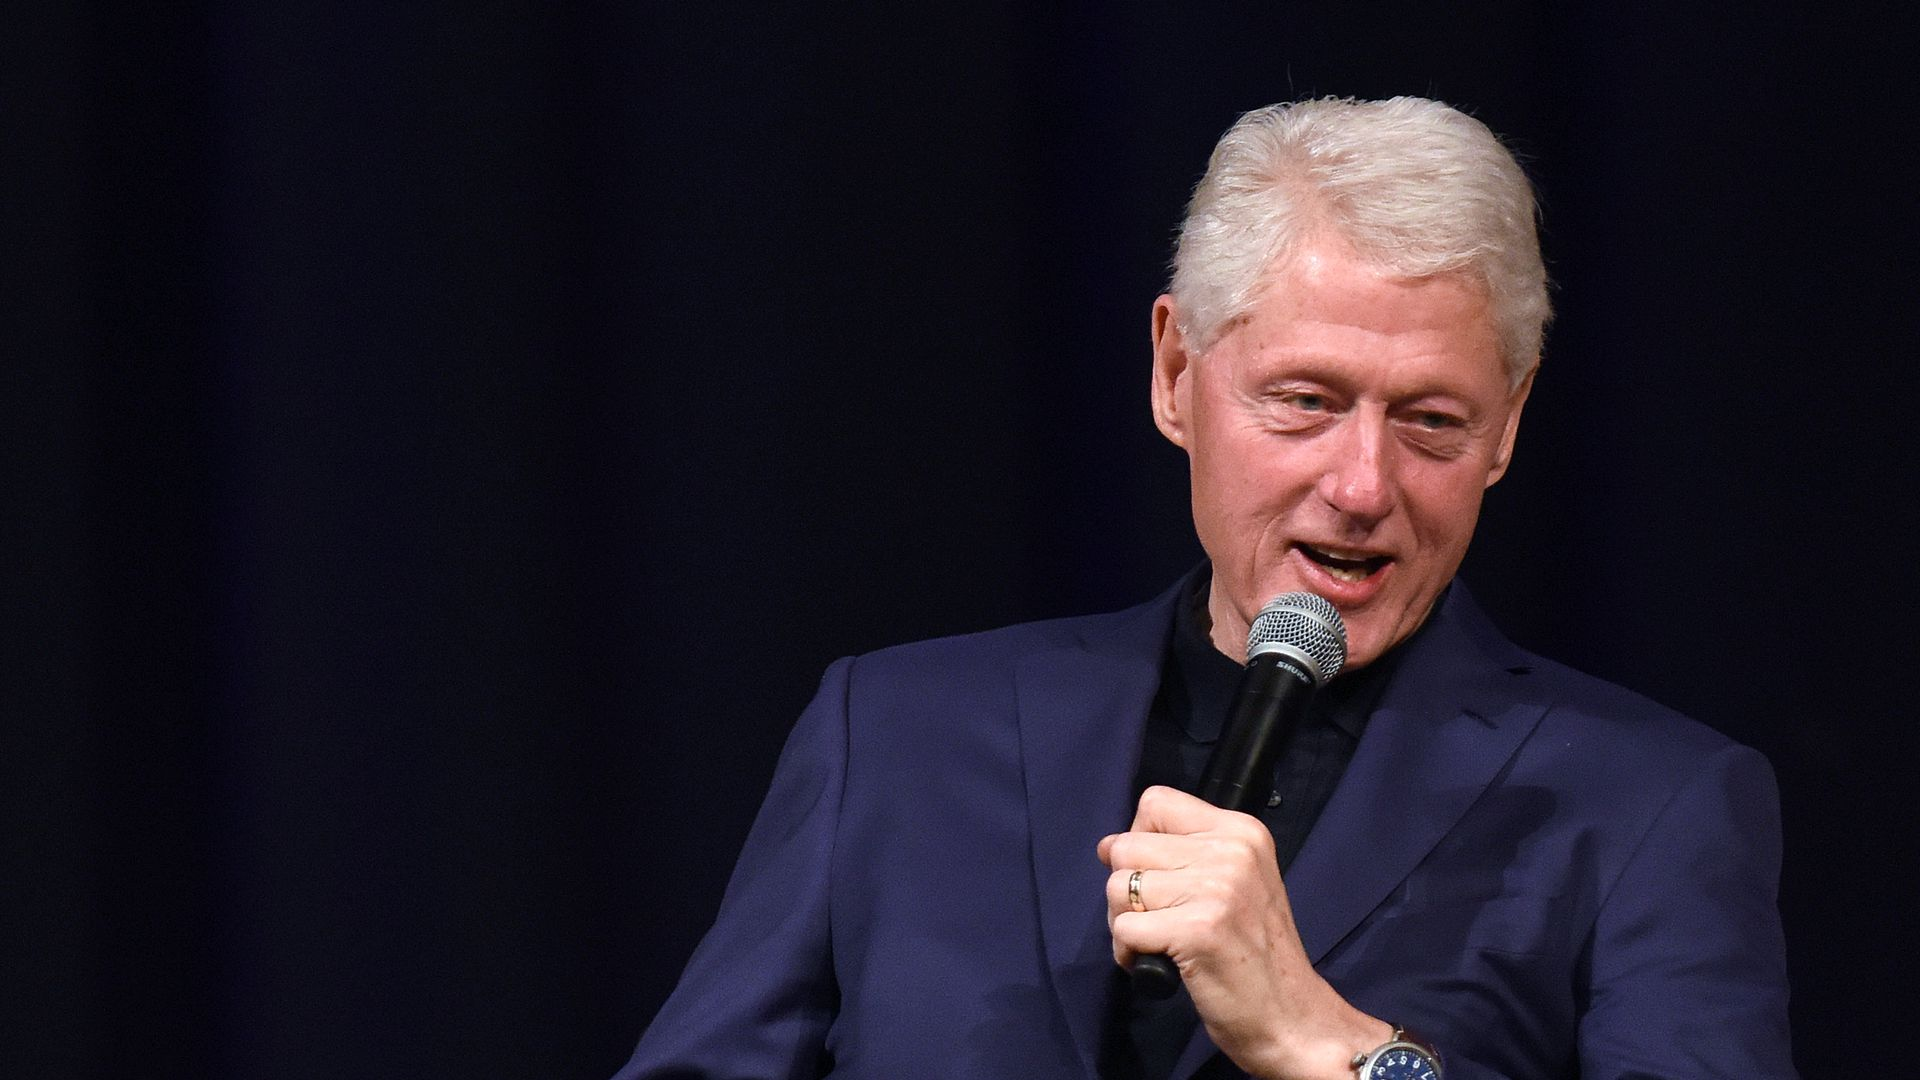 Bill Clinton speaks with a microphone.